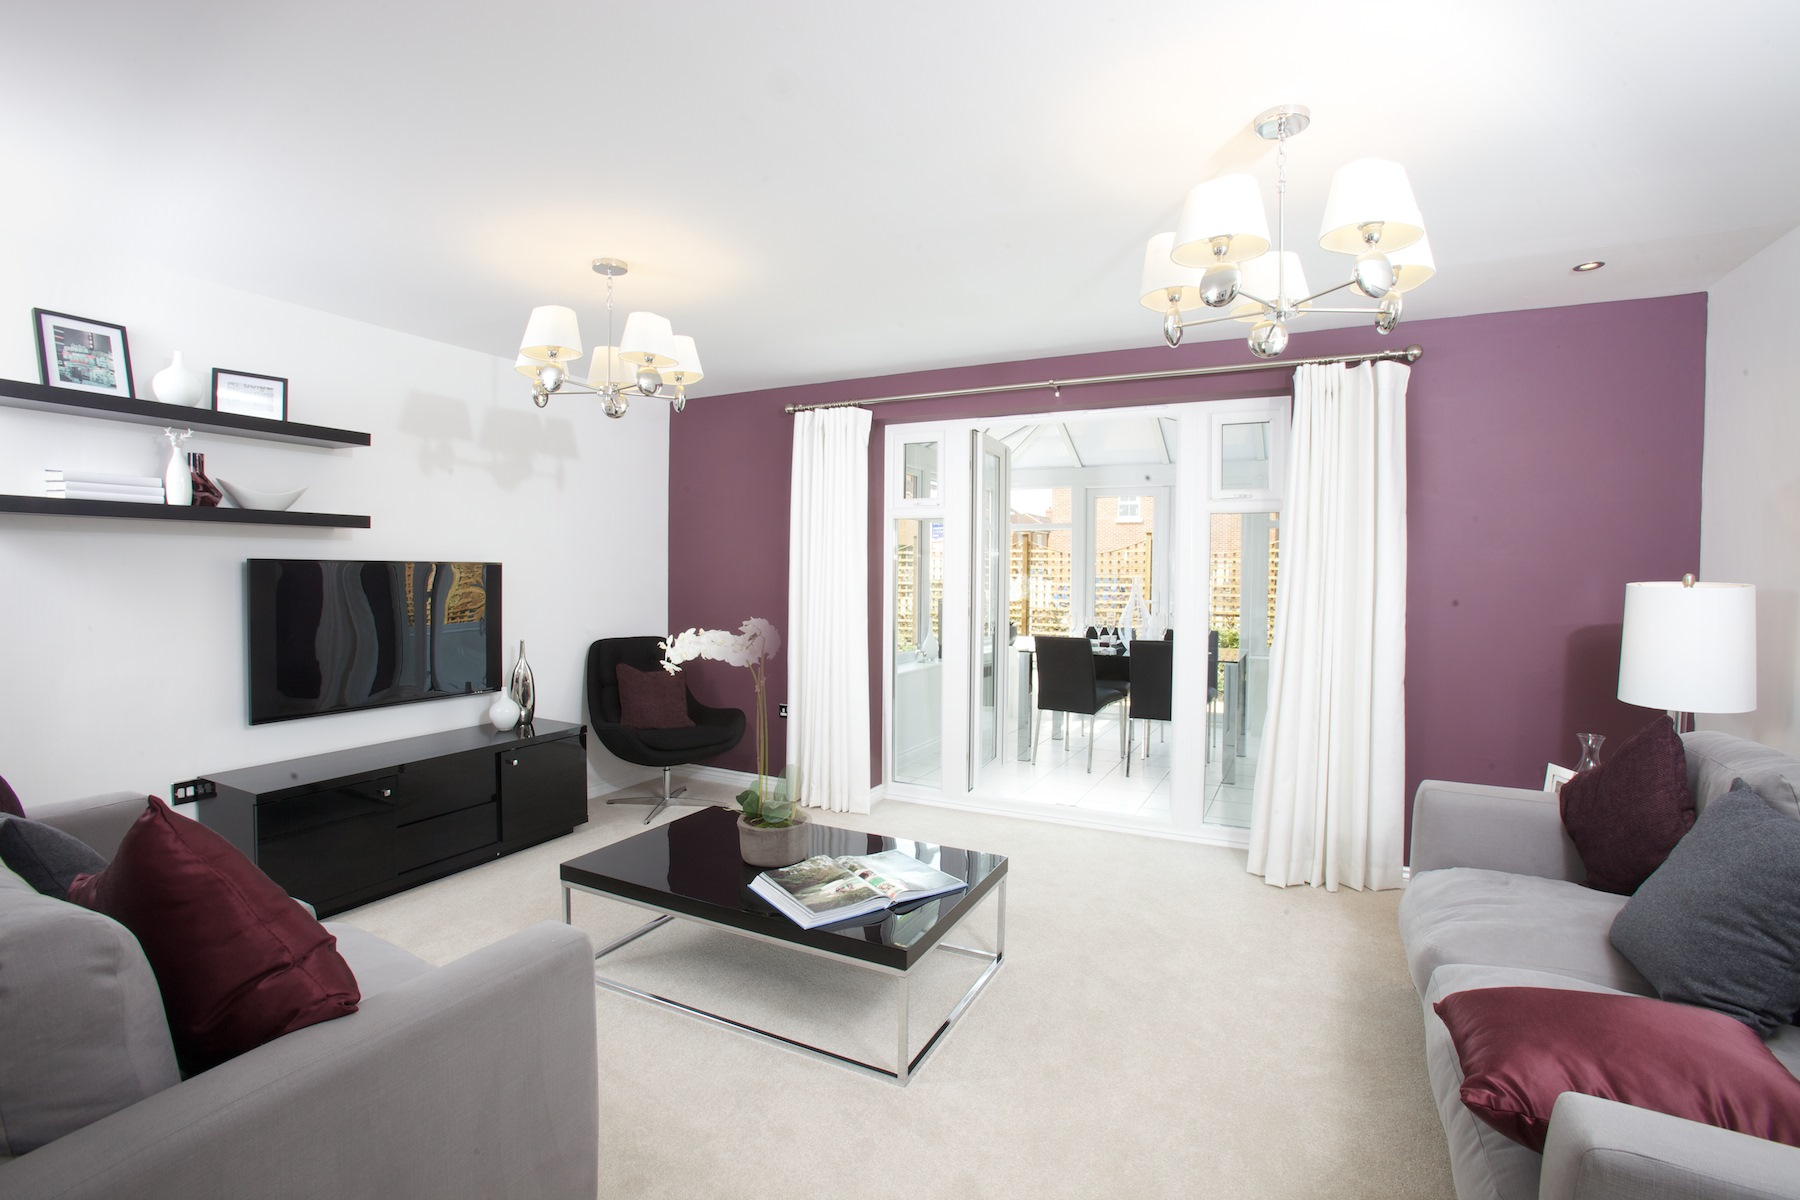 Kings Copse show home - Living room